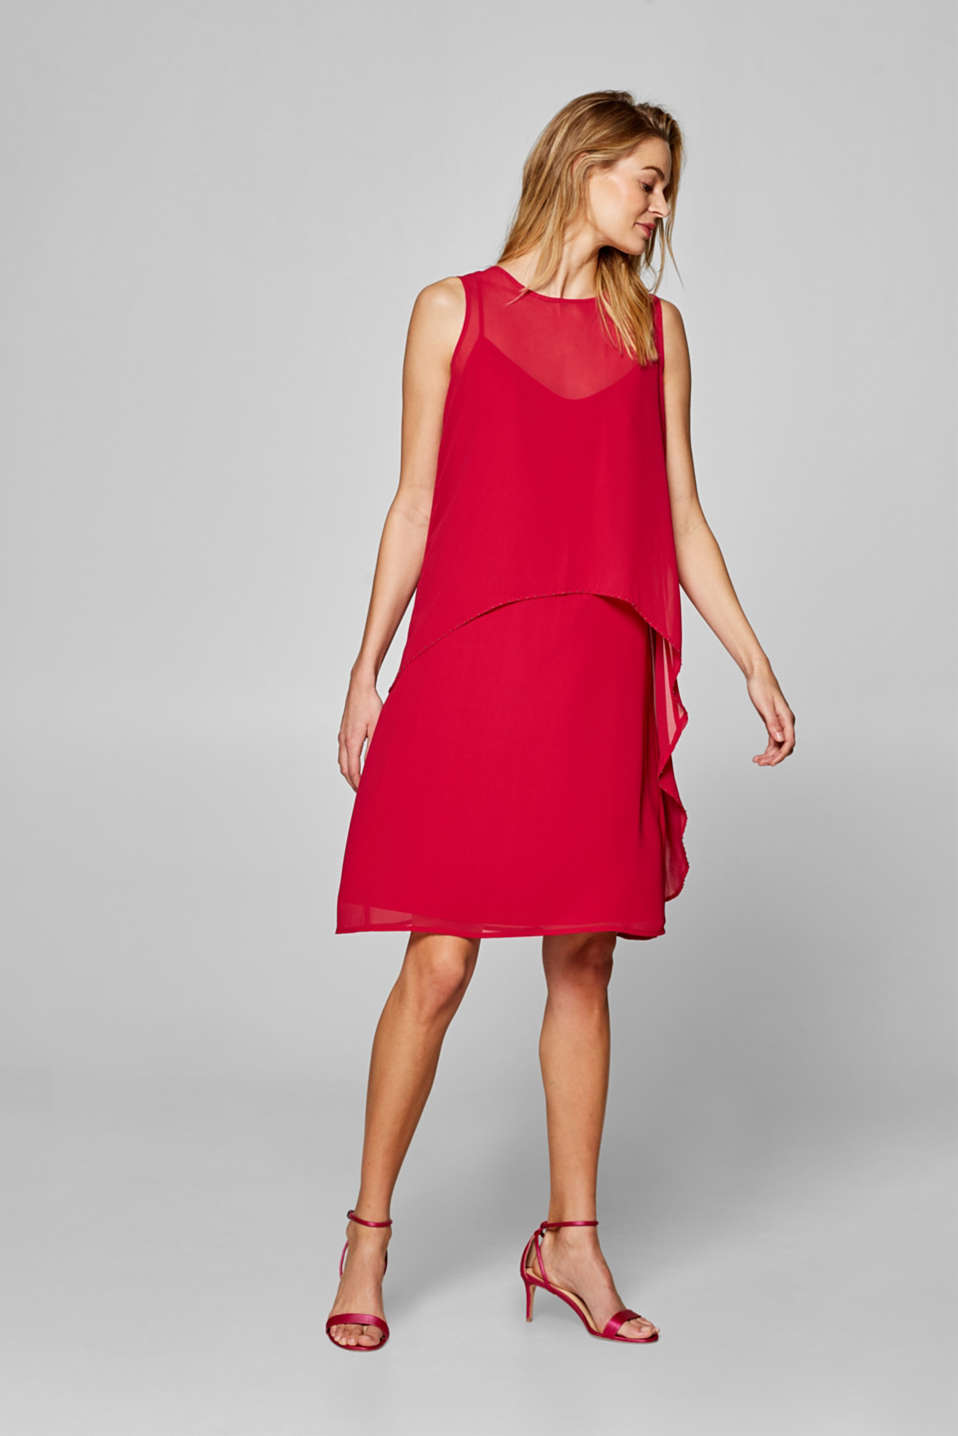 Esprit - Layered chiffon dress trimmed with beads